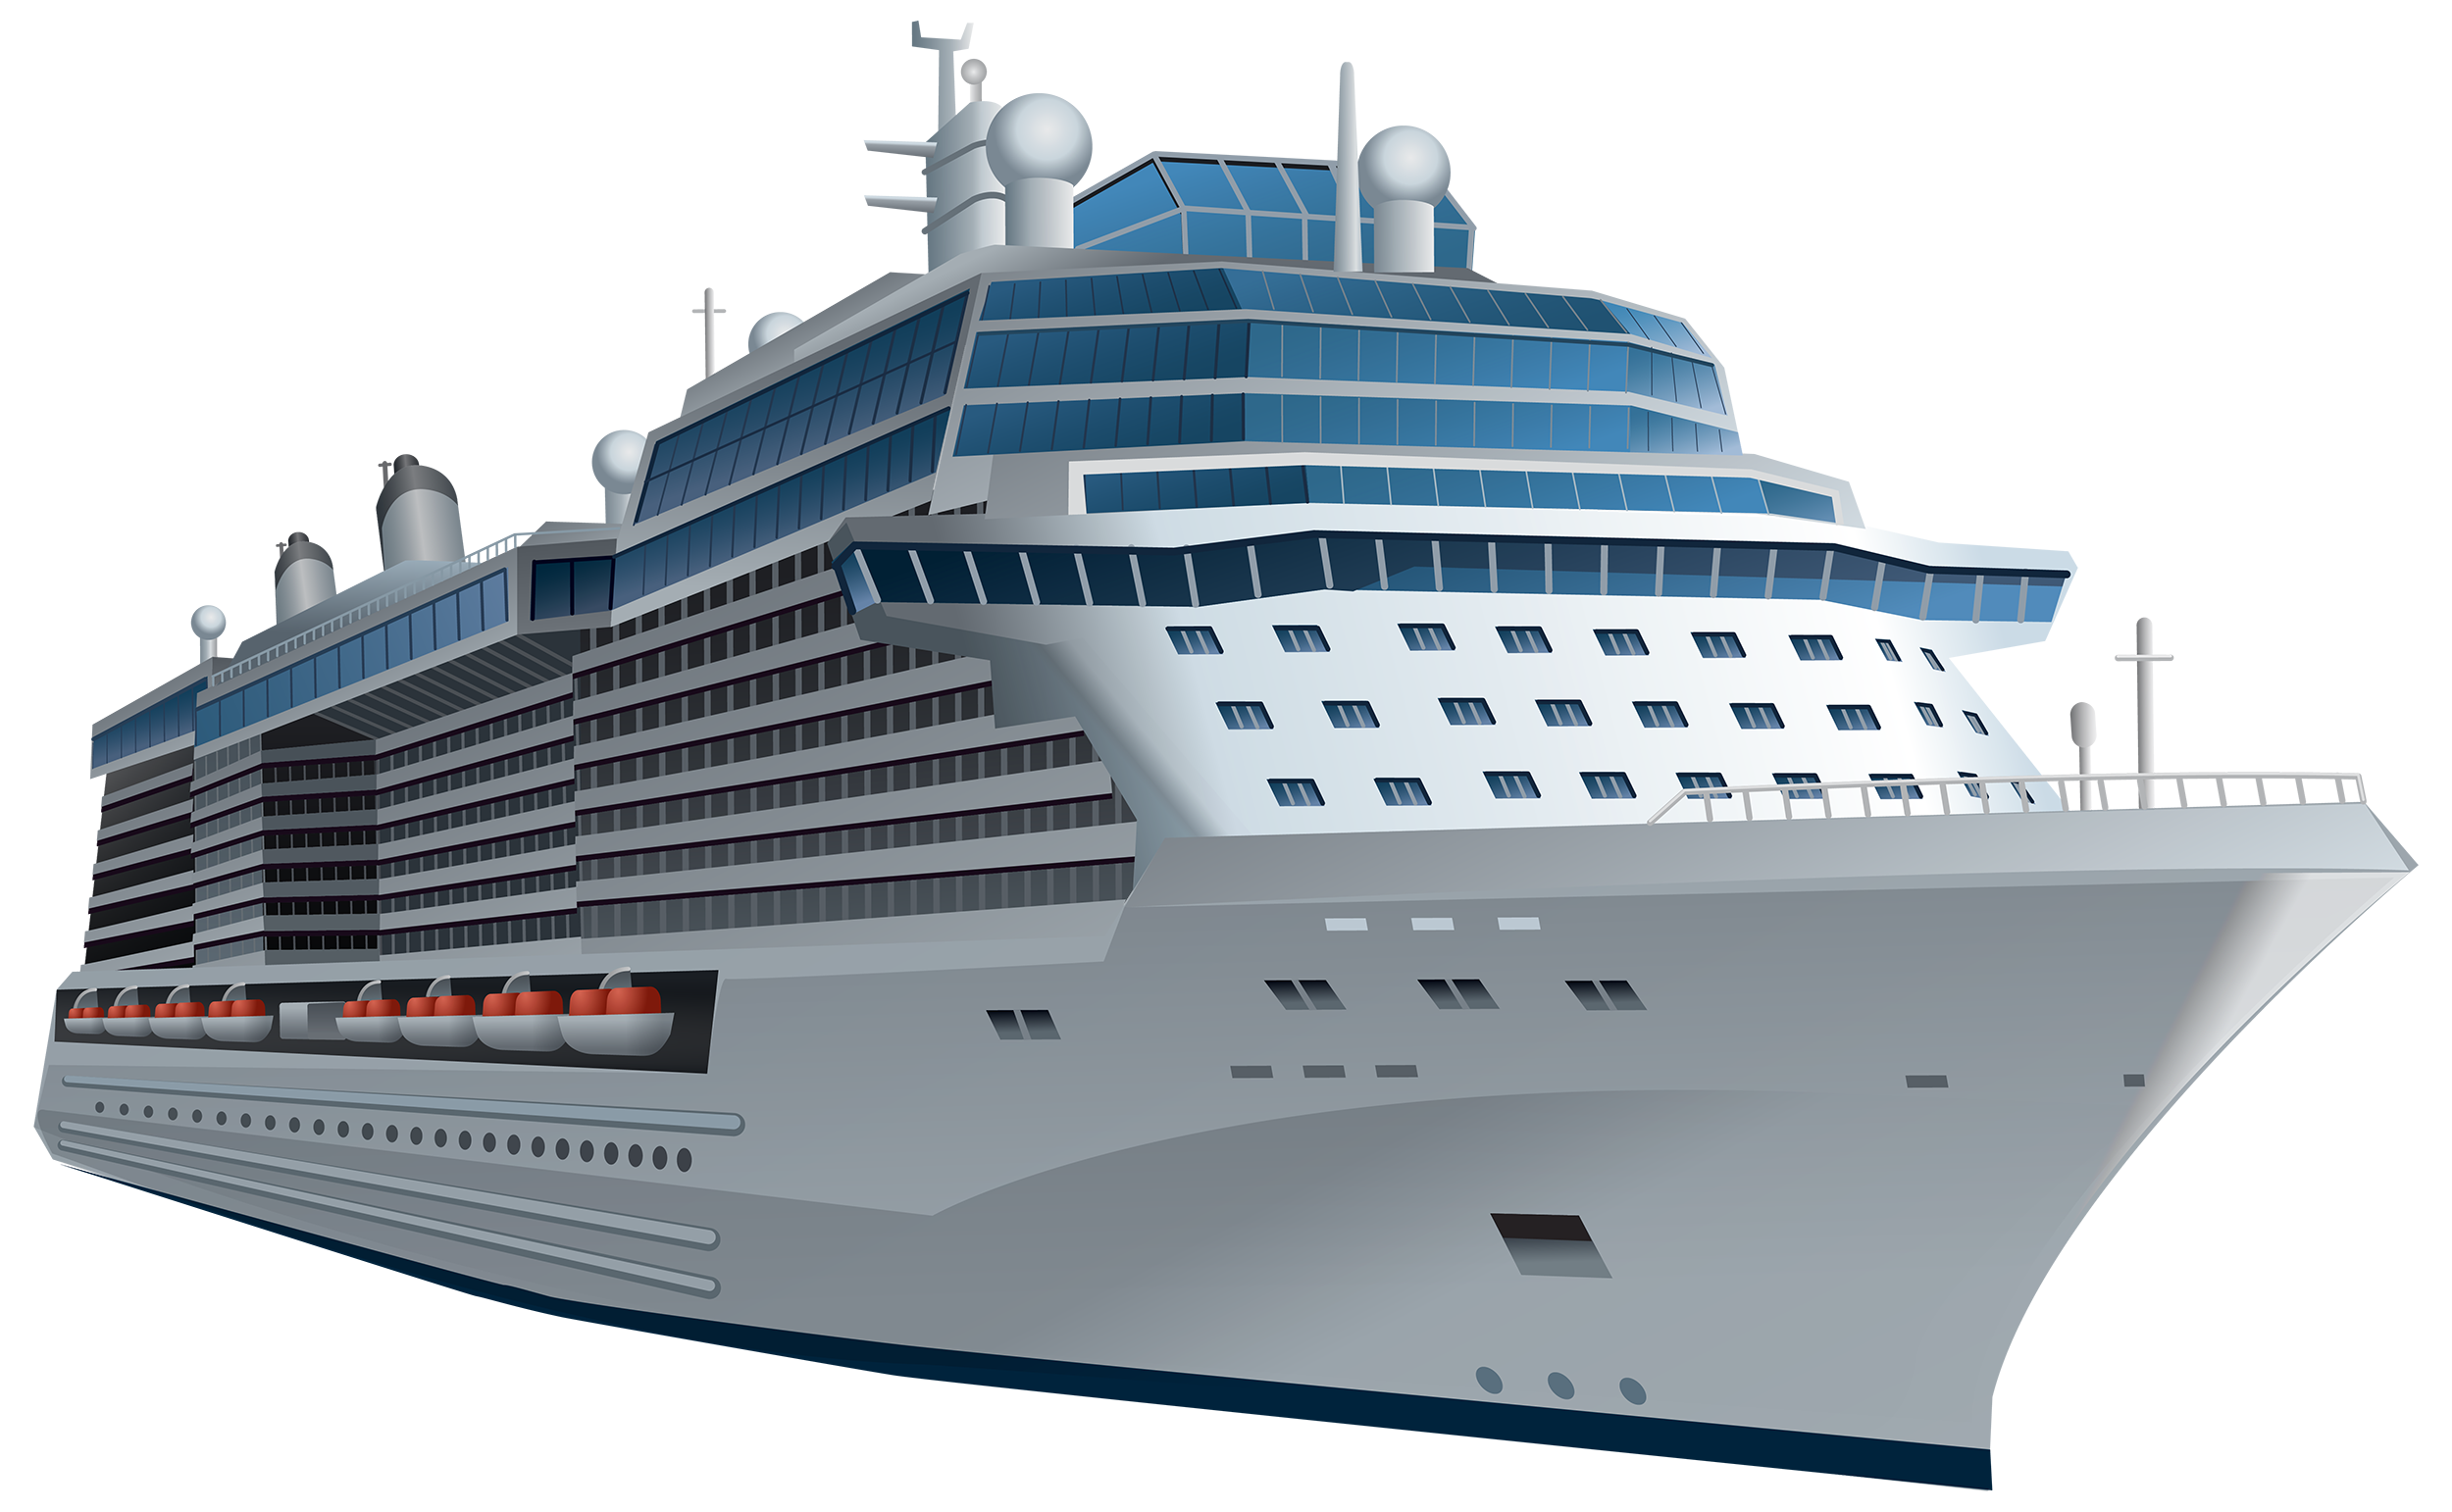 cruise ship clipart clear background